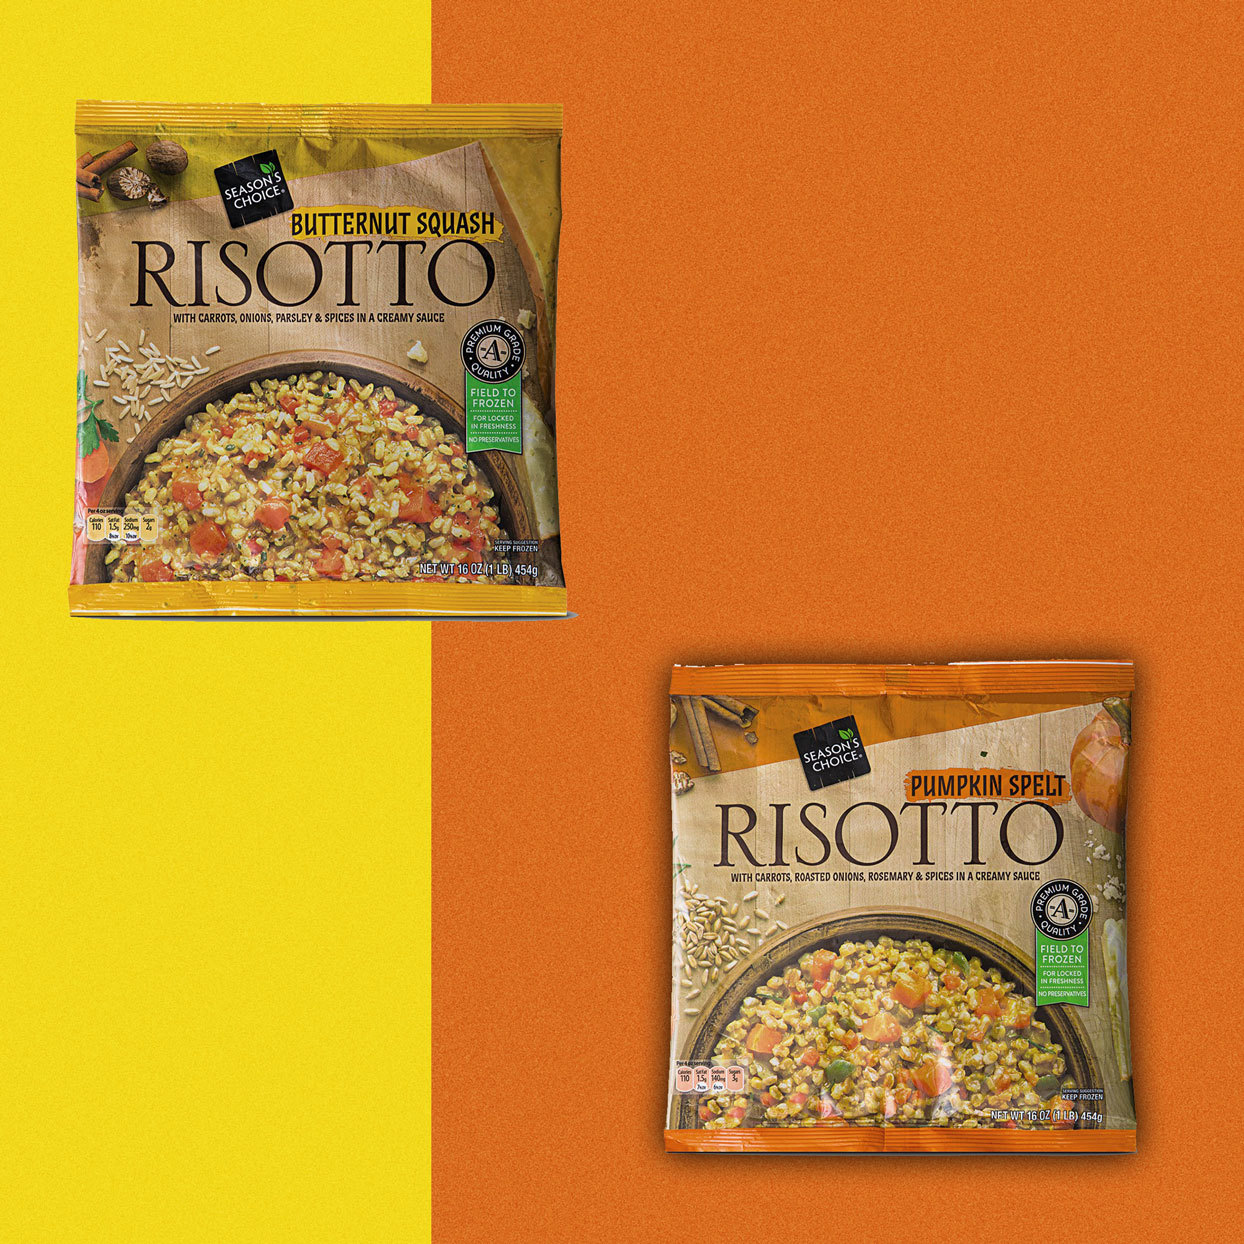 bag of Butternut Squash Risotto and Pumpkin Spelt Risotto